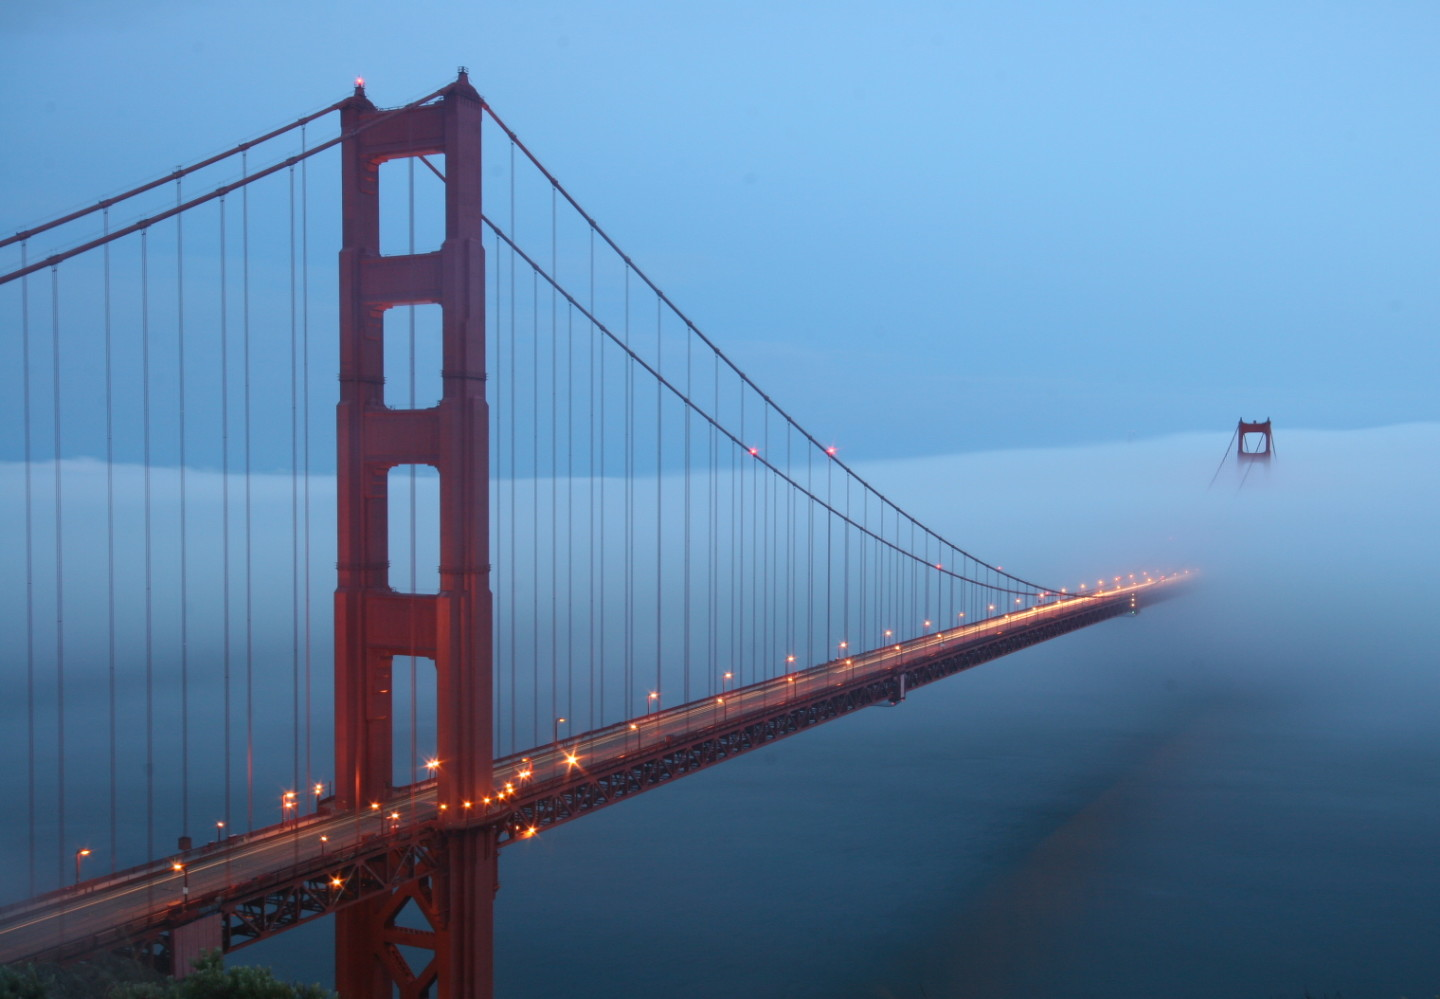 The Chilling Effect: Why San Francisco Gets So Dang Foggy in the Summer [Interactive]